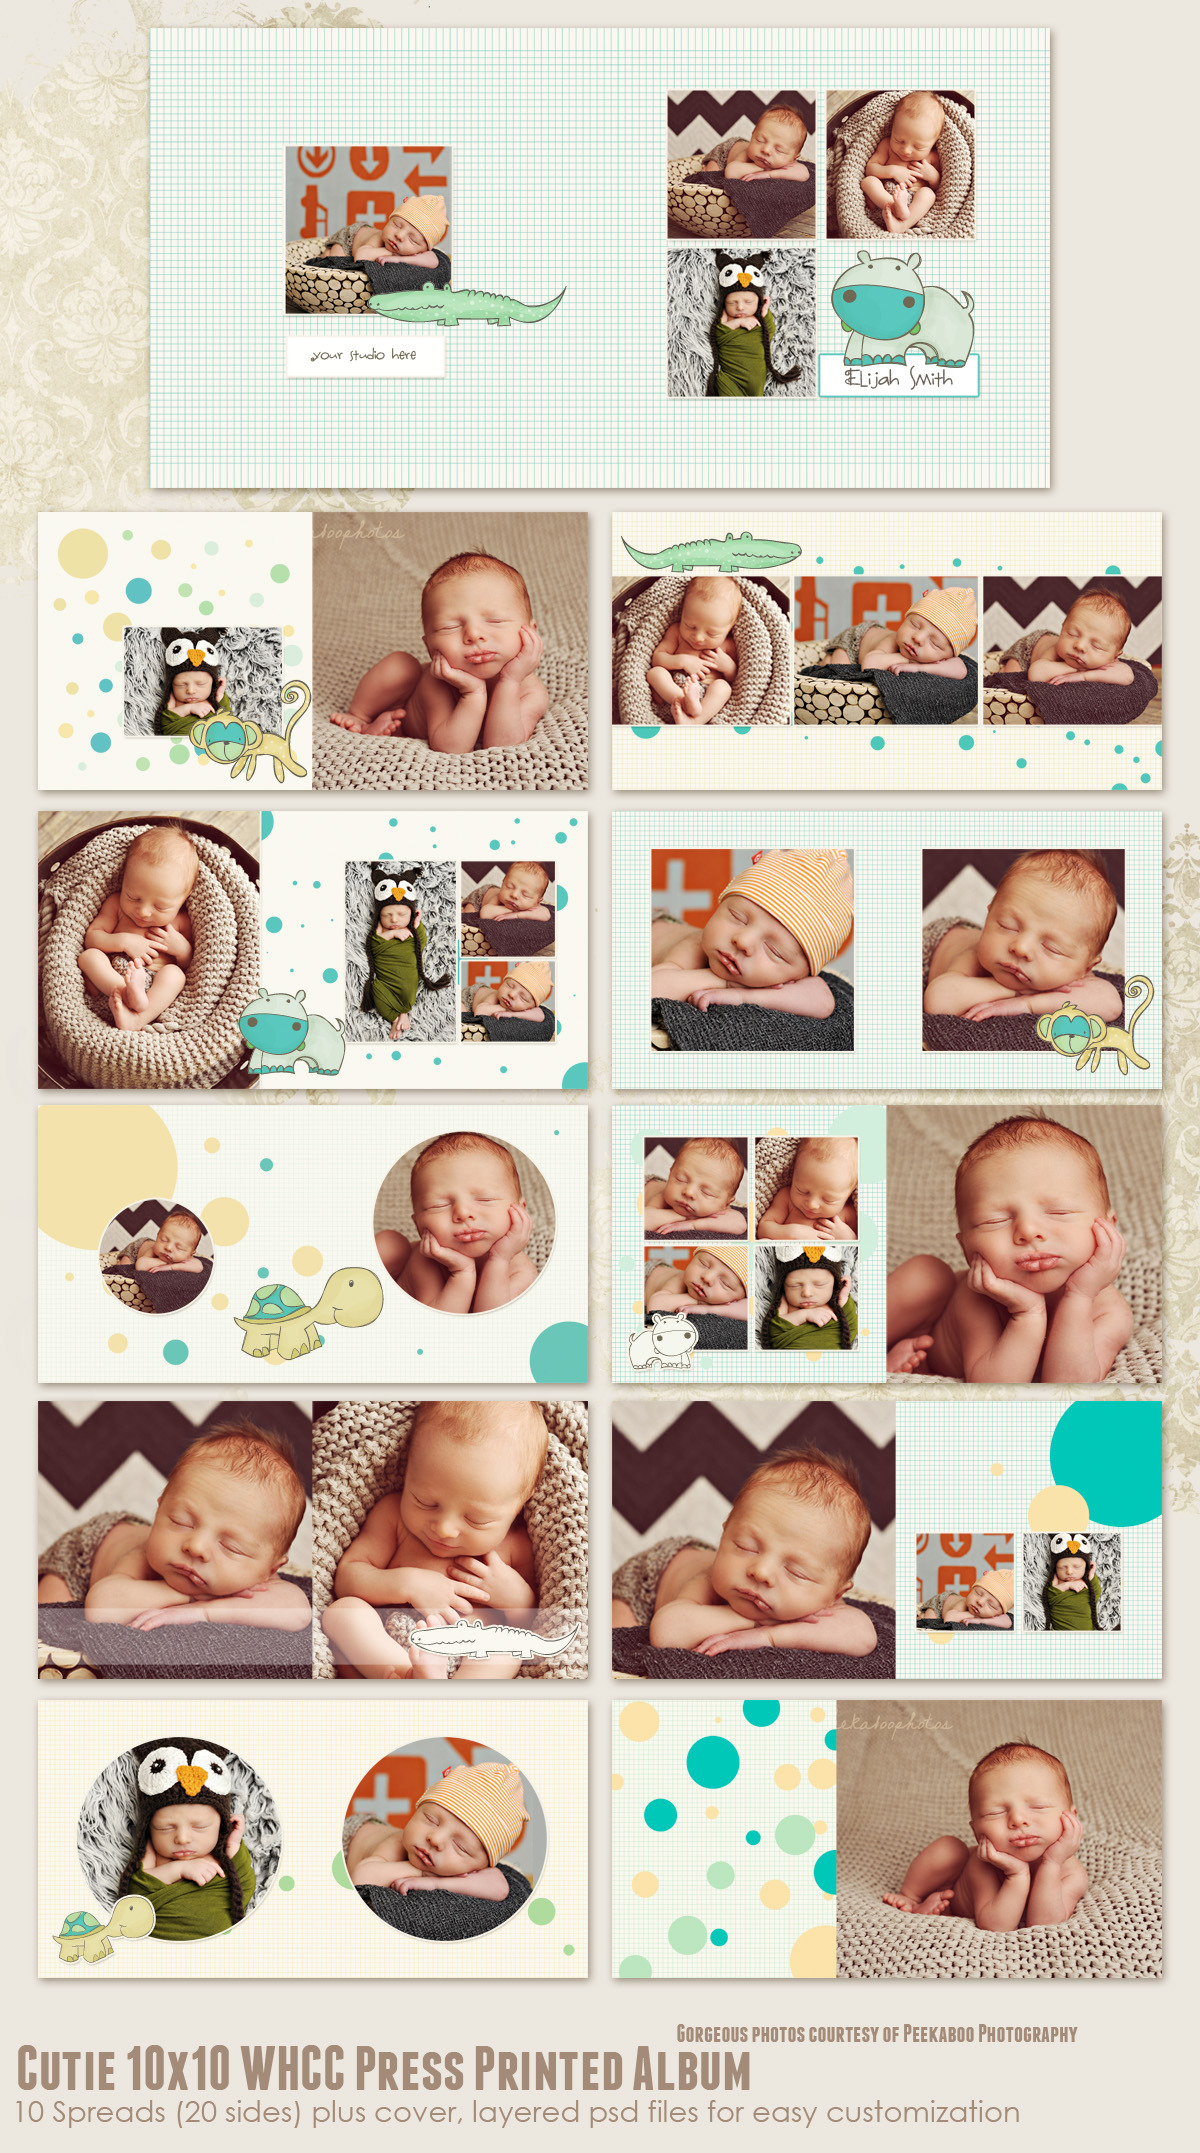 Cutie 10x10 WHCC Press Printed Album